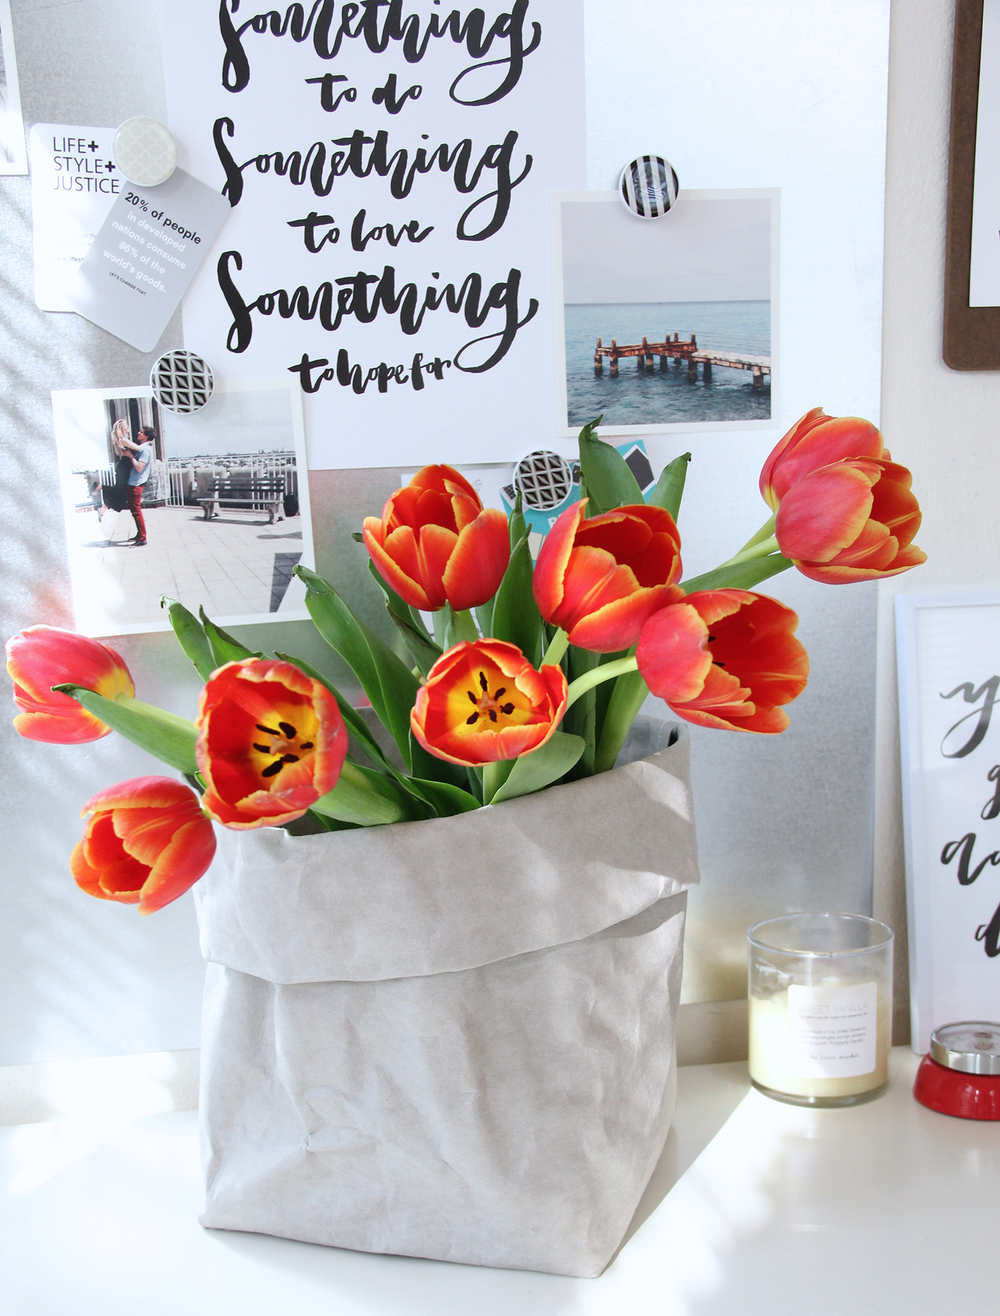 Life + Style + Justice Blog